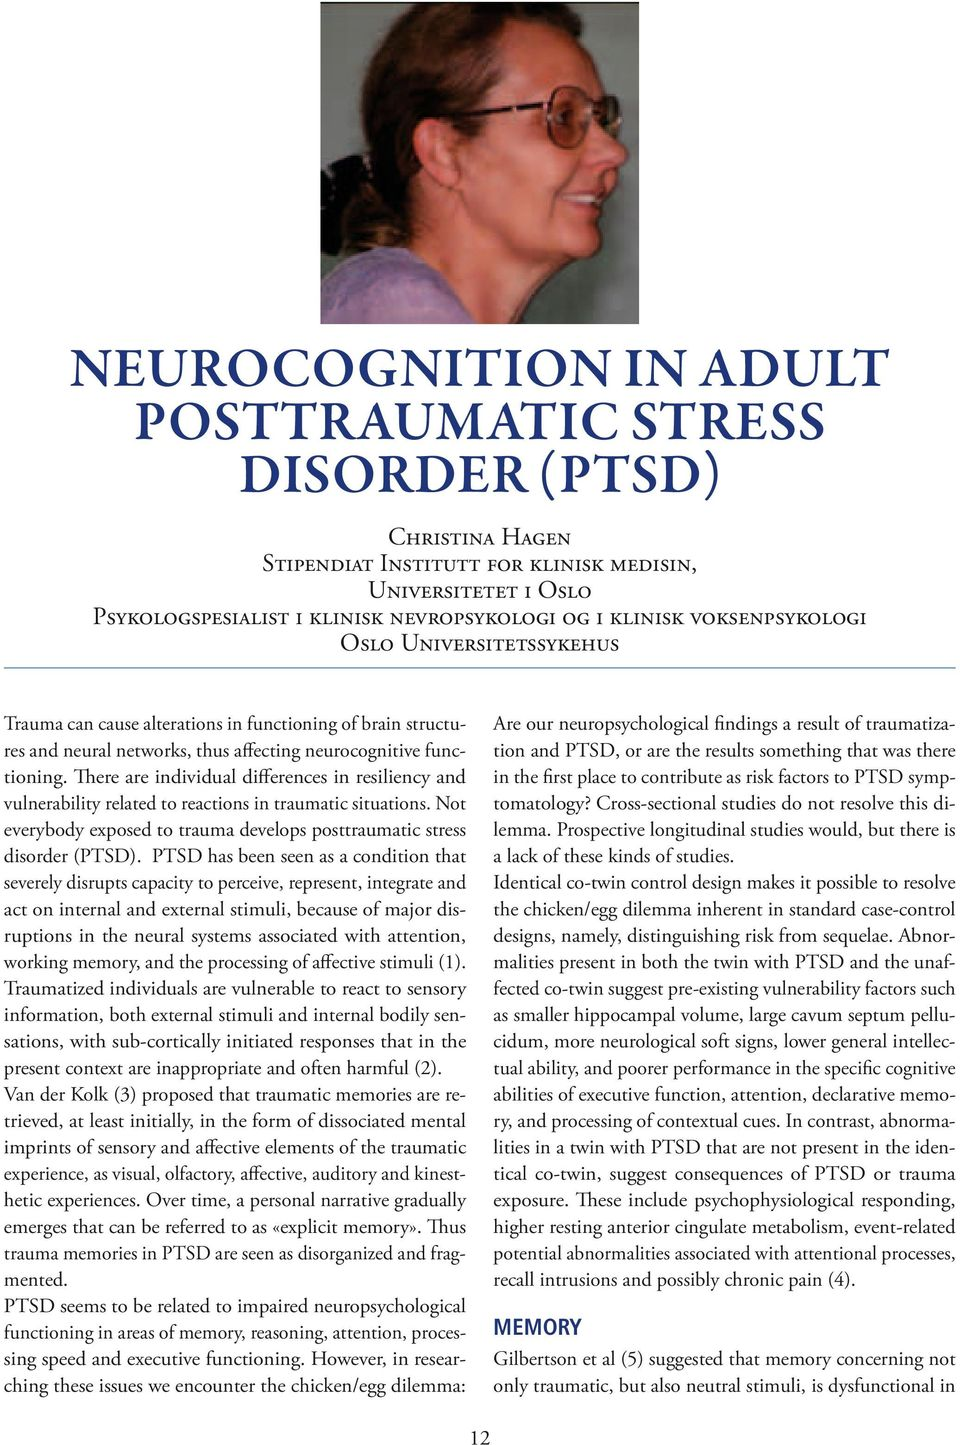 There are individual differences in resiliency and vulnerability related to reactions in traumatic situations. Not everybody exposed to trauma develops posttraumatic stress disorder (PTSD).